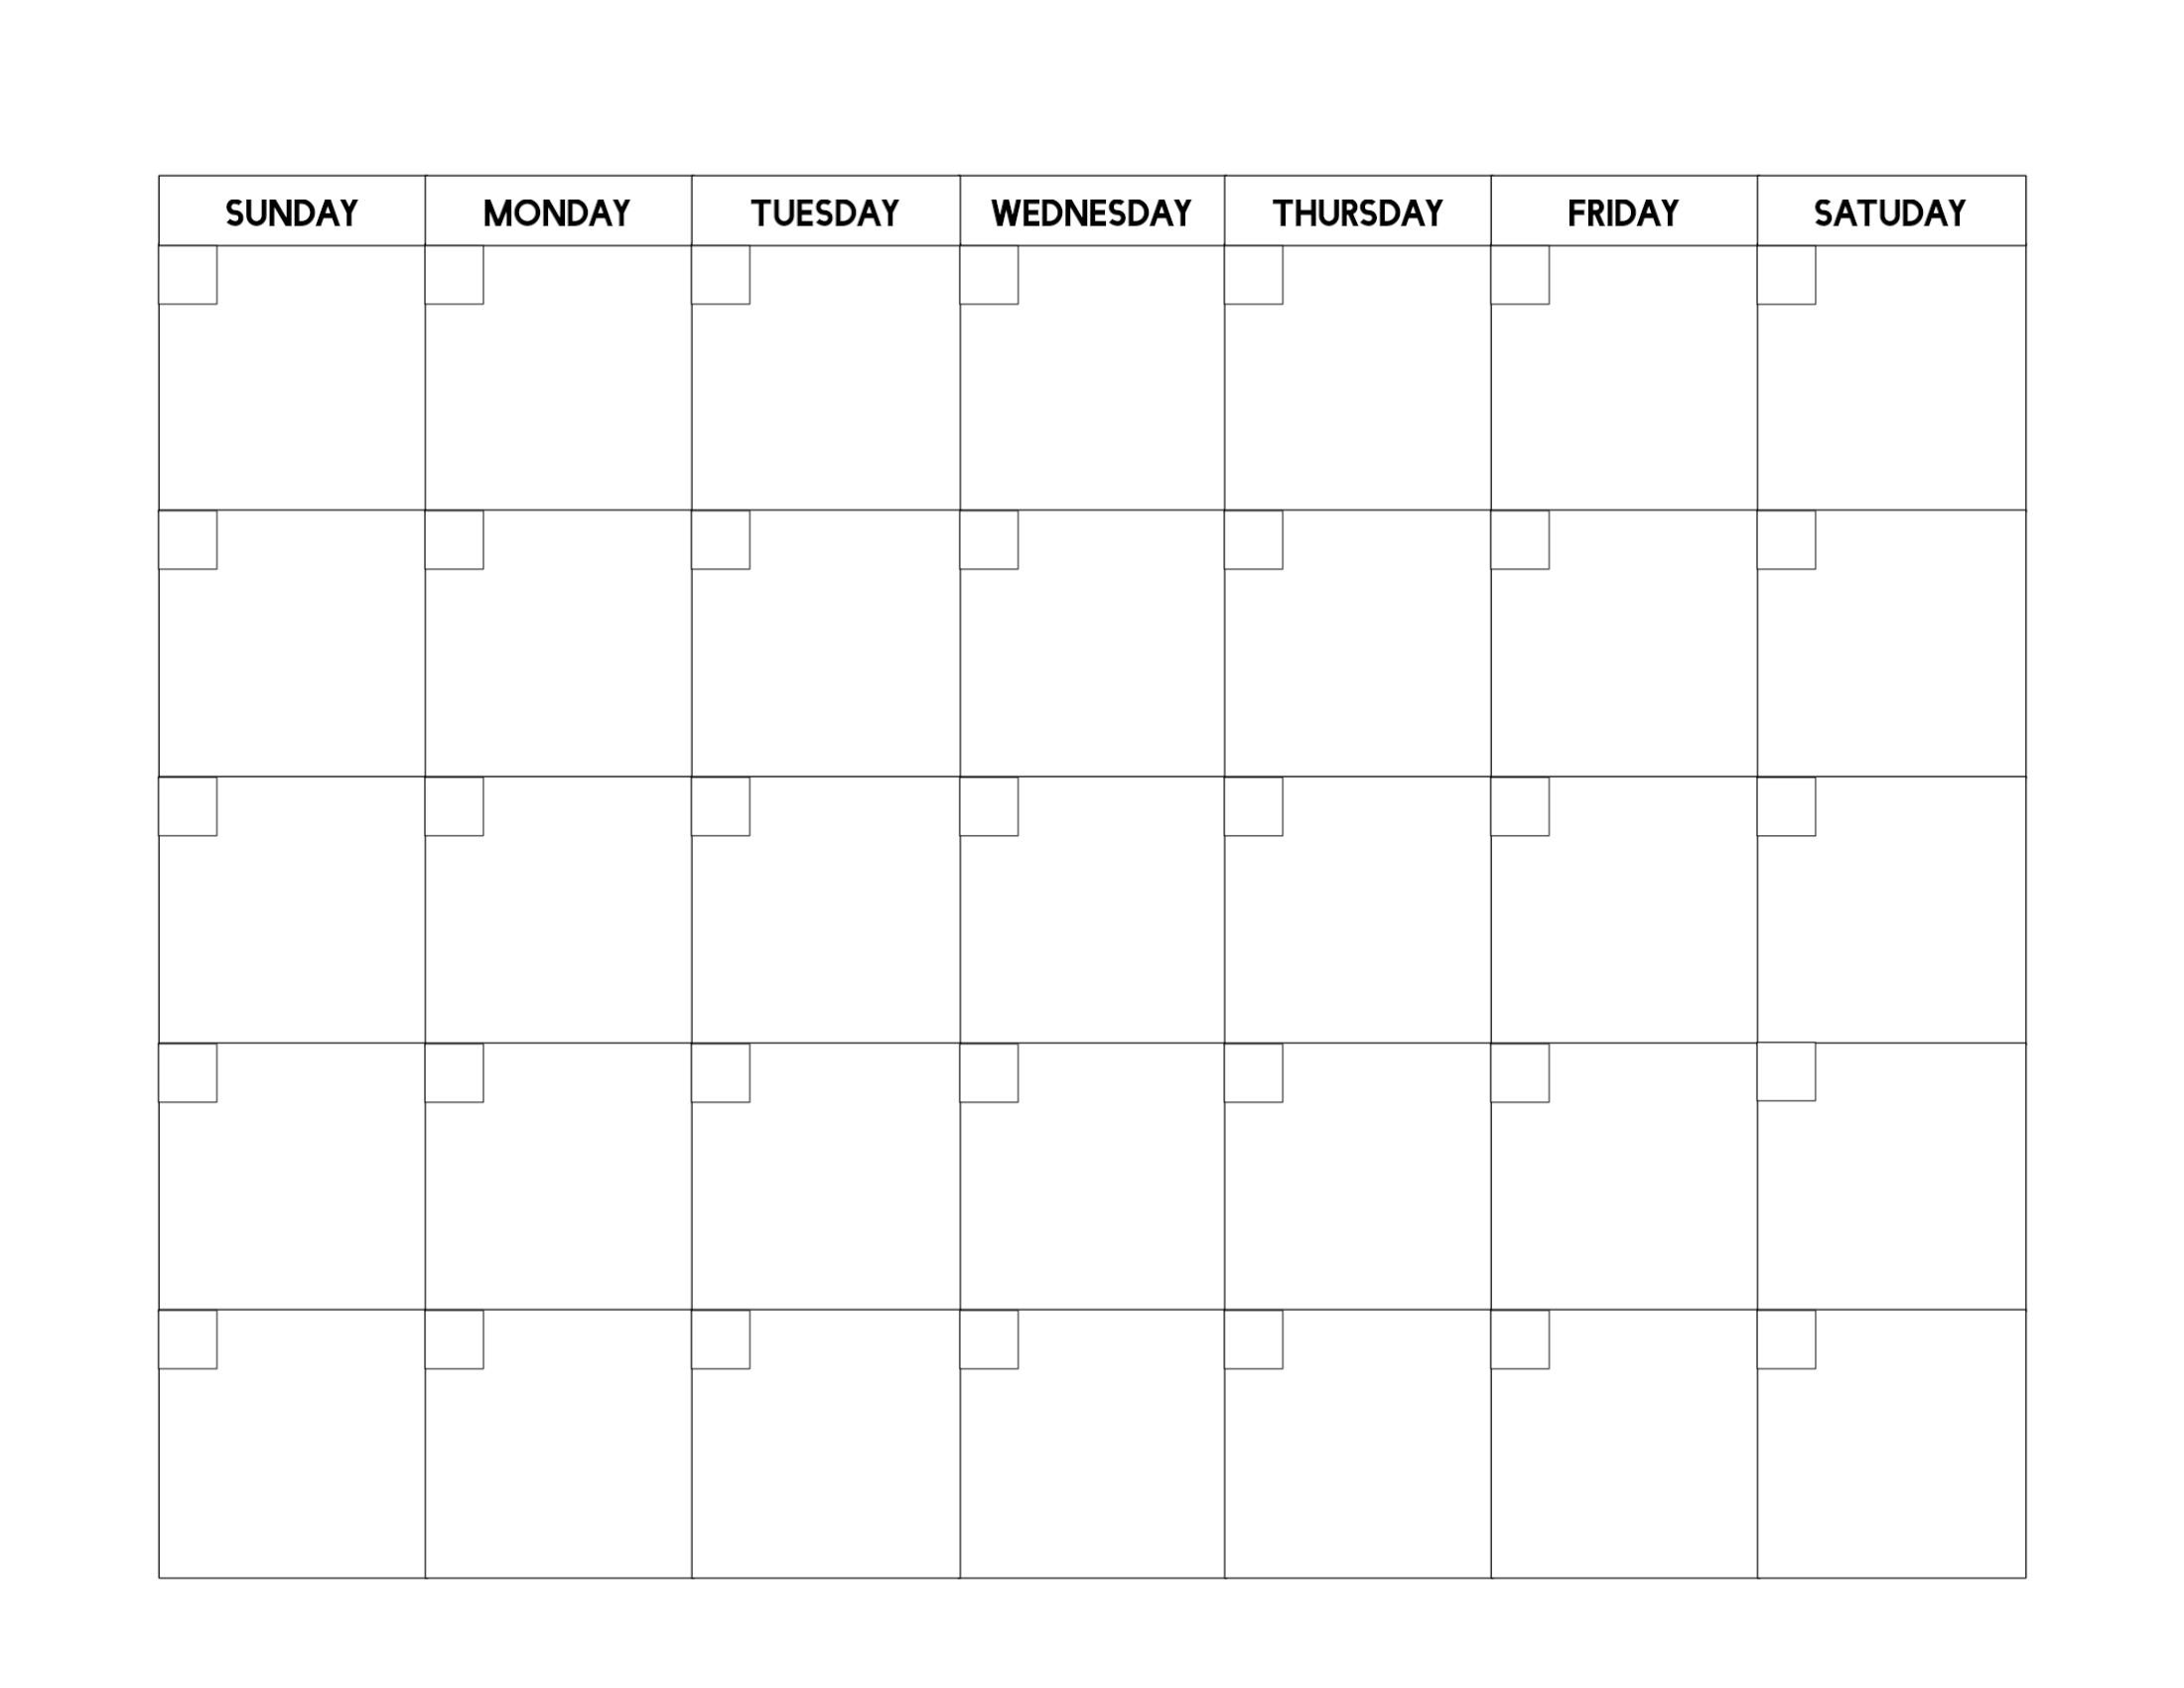 Universal Free Fill In Calendars In 2020 | Printable Blank Online Calendar To Fill In